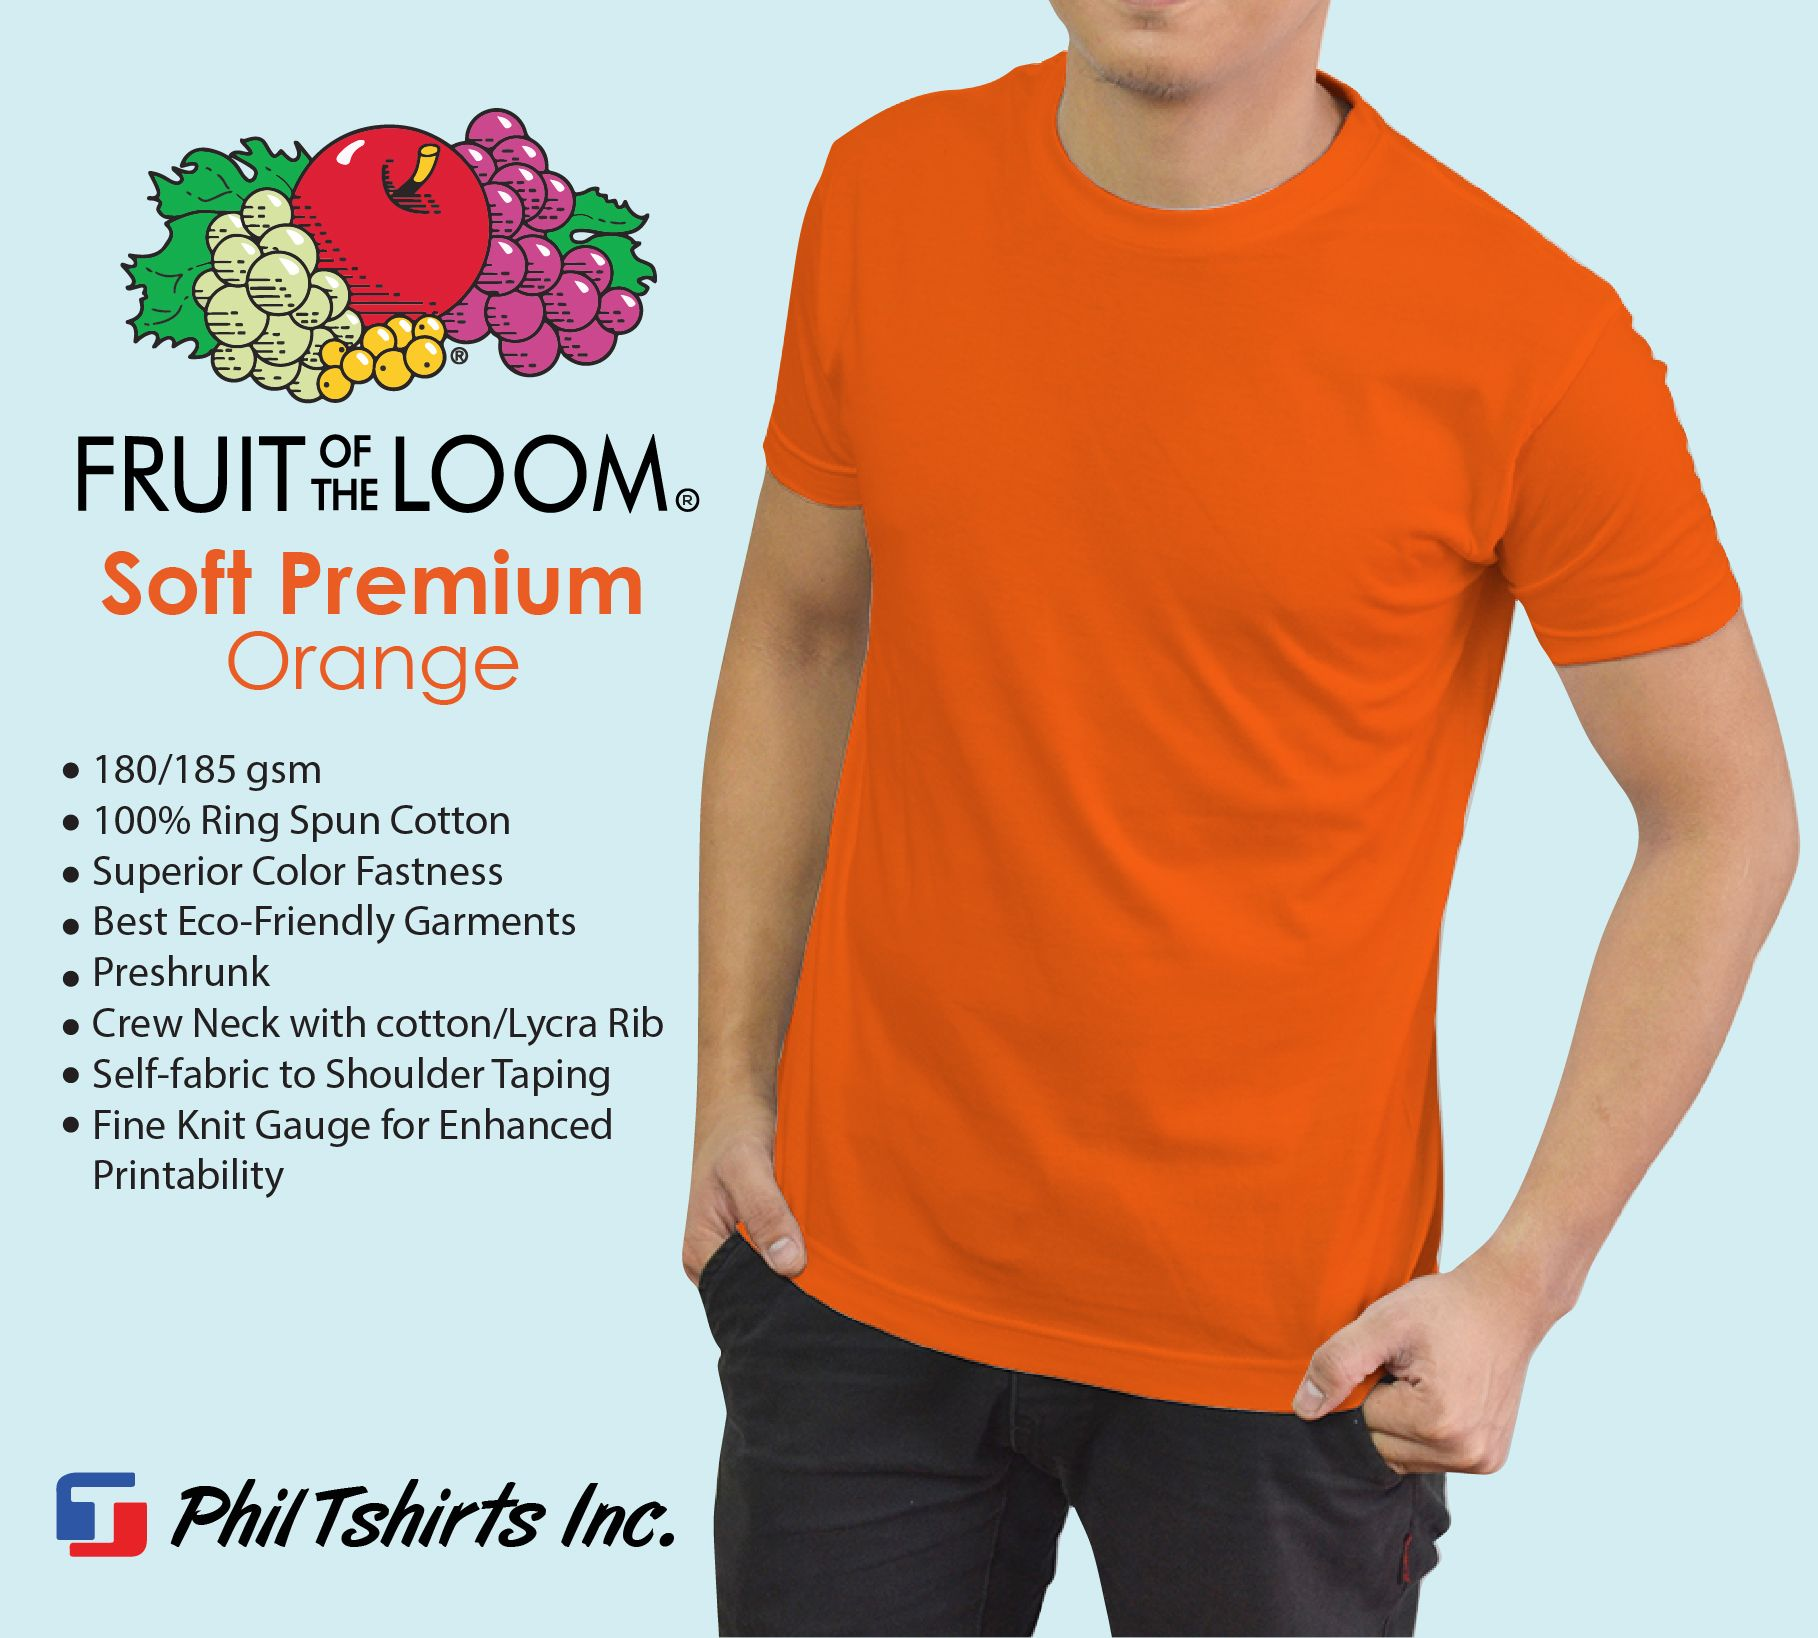 bdff89d8 Phil TShirts Inc. is an authorized distributor of Fruit of the Loom Shirts  that are made in US. Superior quality, fashionable, comfortable, and  definitely ...